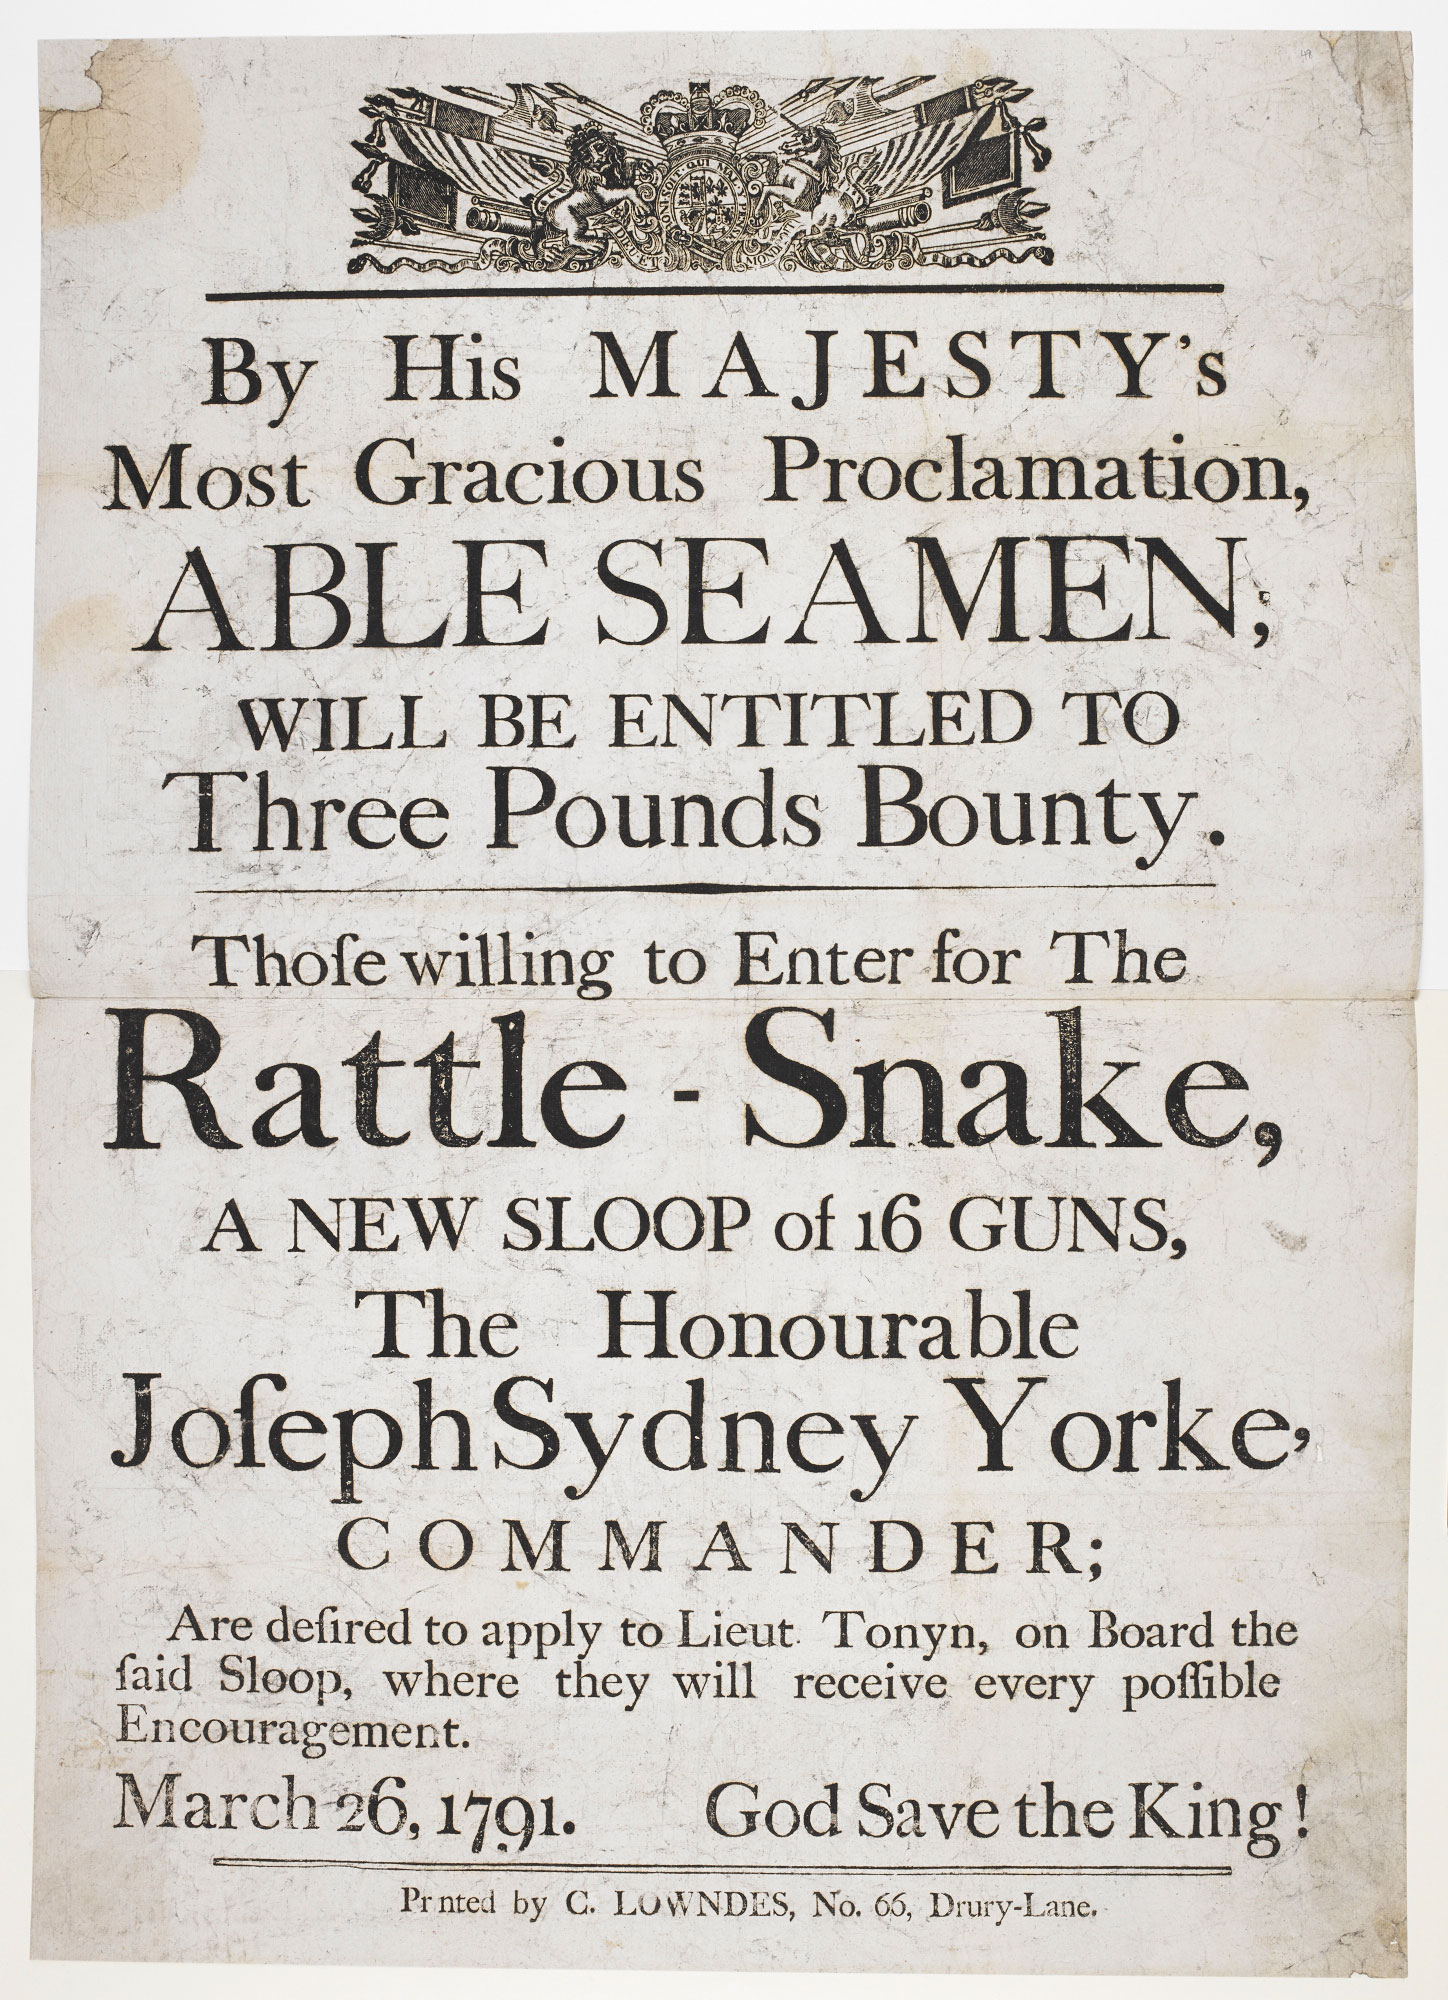 Advertisement for sailors to enlist in the Rattle-Snake